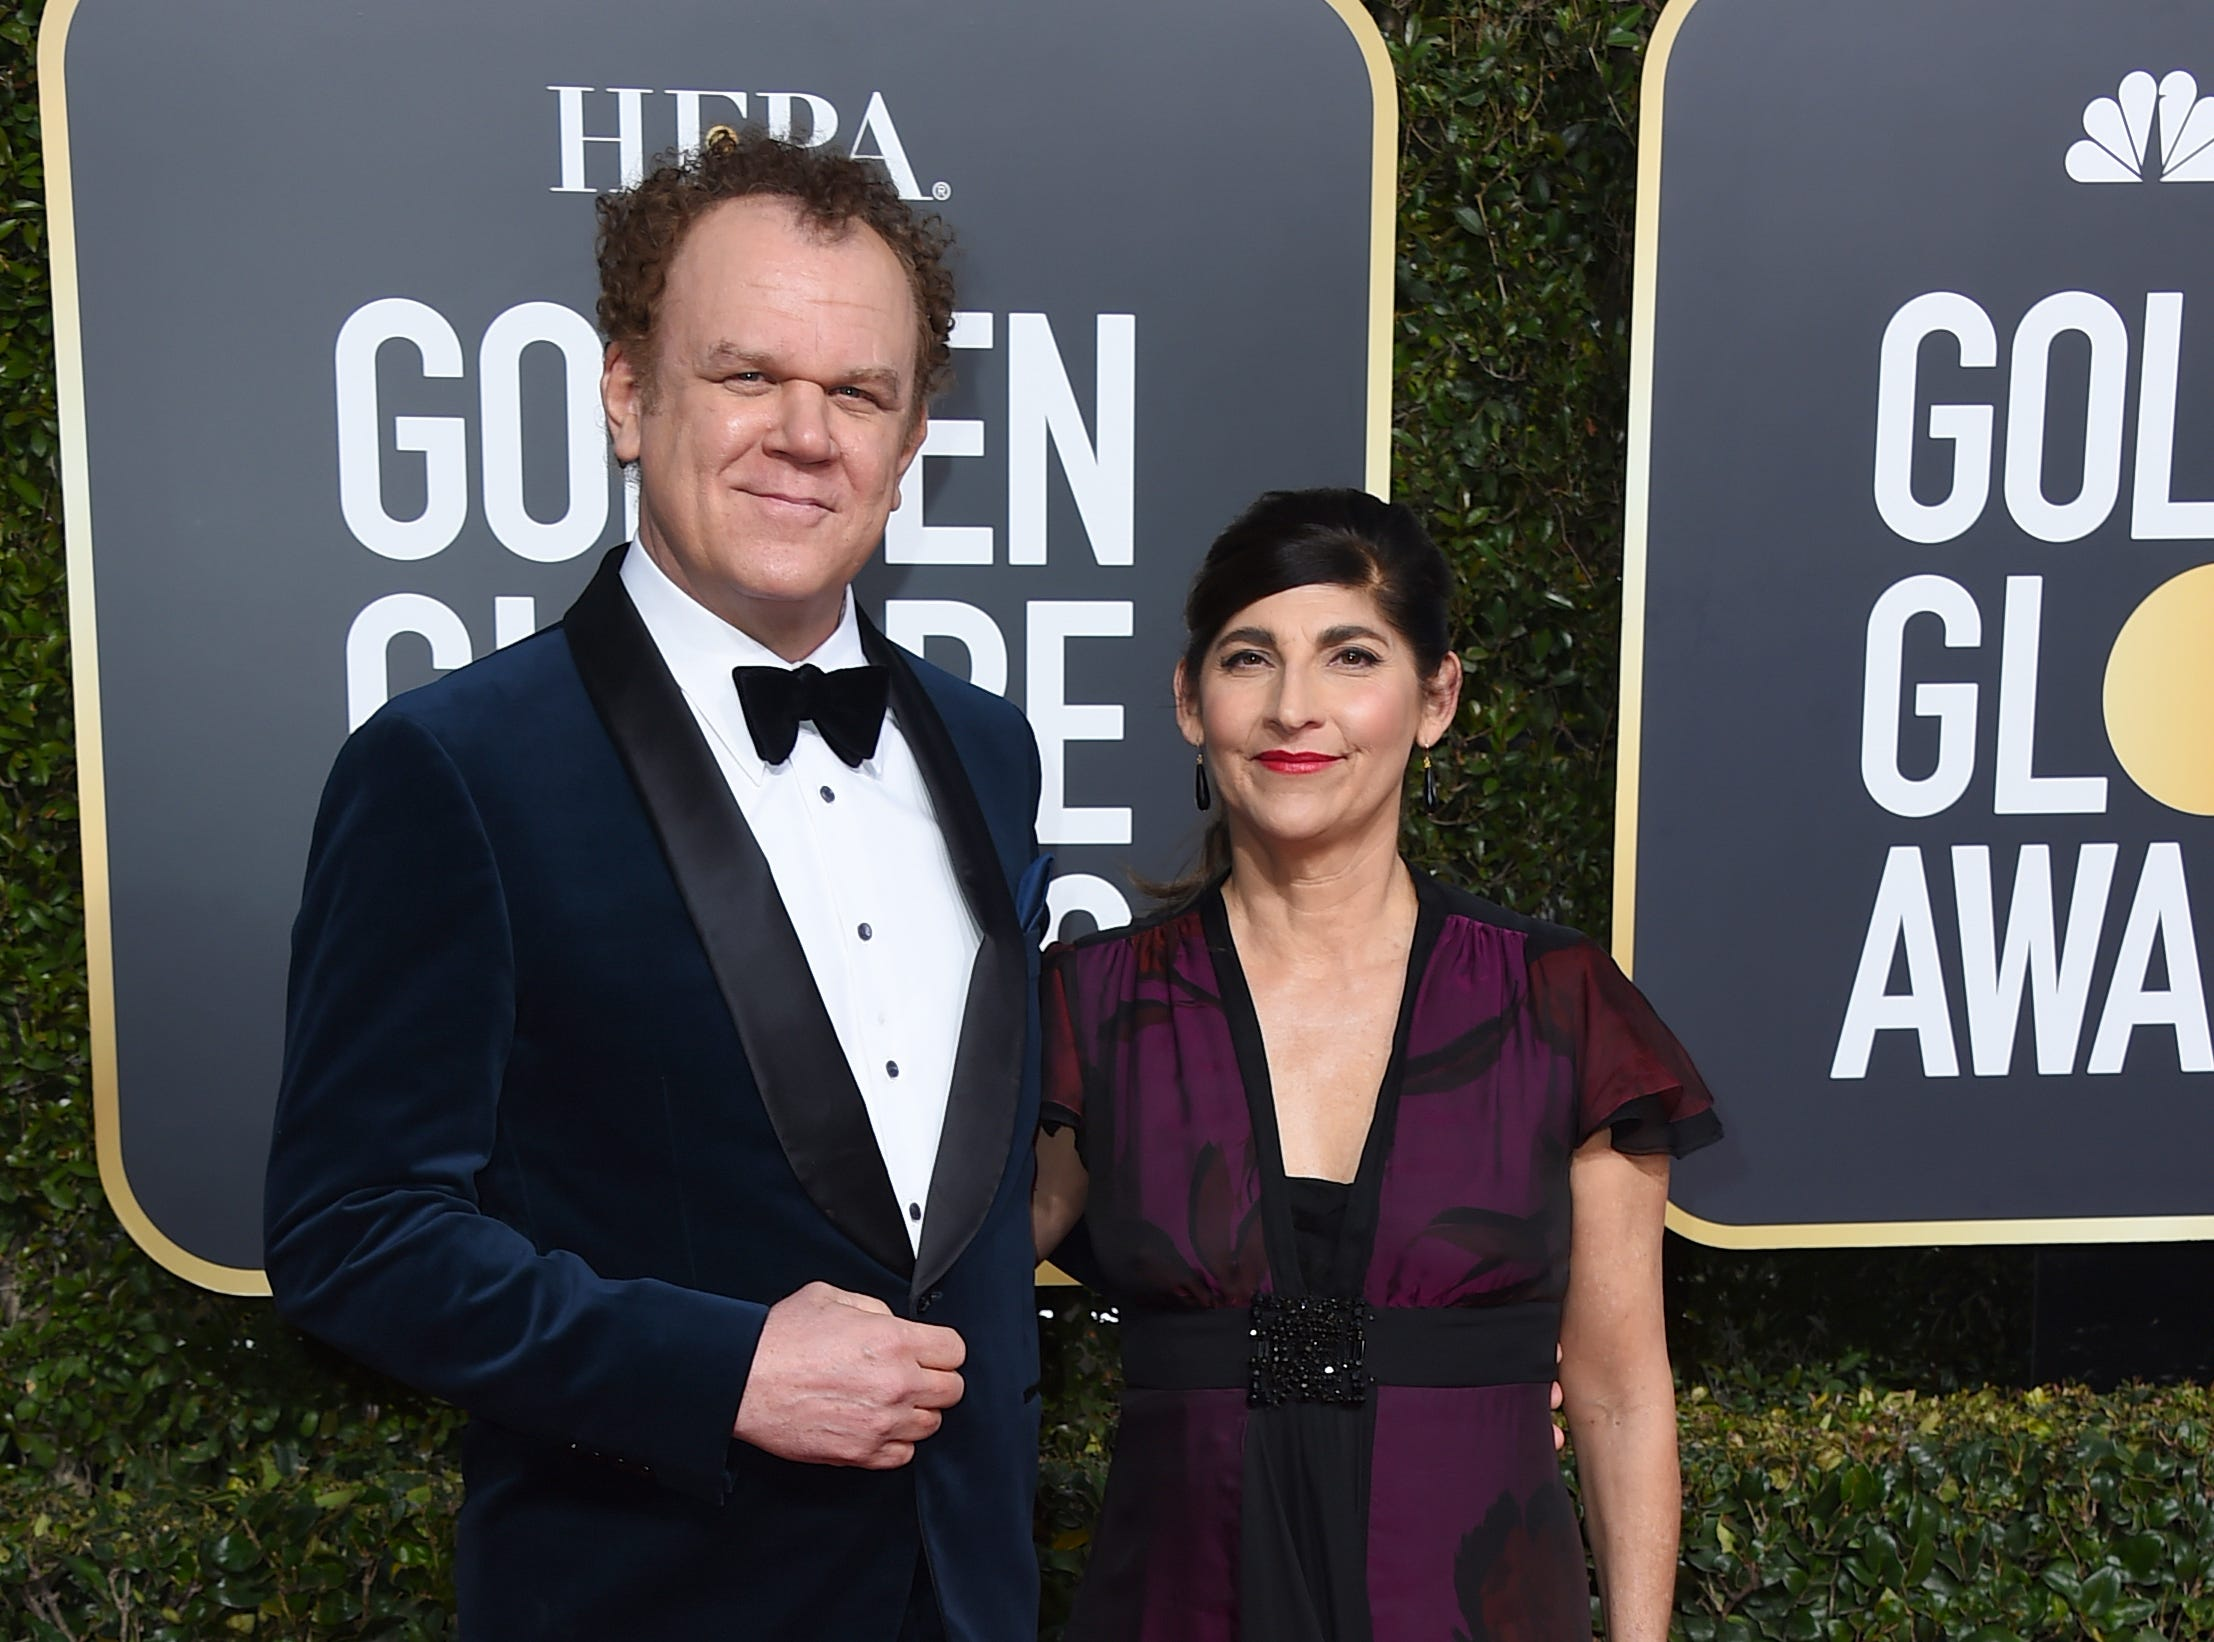 John C. Reilly, left, and Alison Dickey arrive at the 76th annual Golden Globe Awards at the Beverly Hilton Hotel.